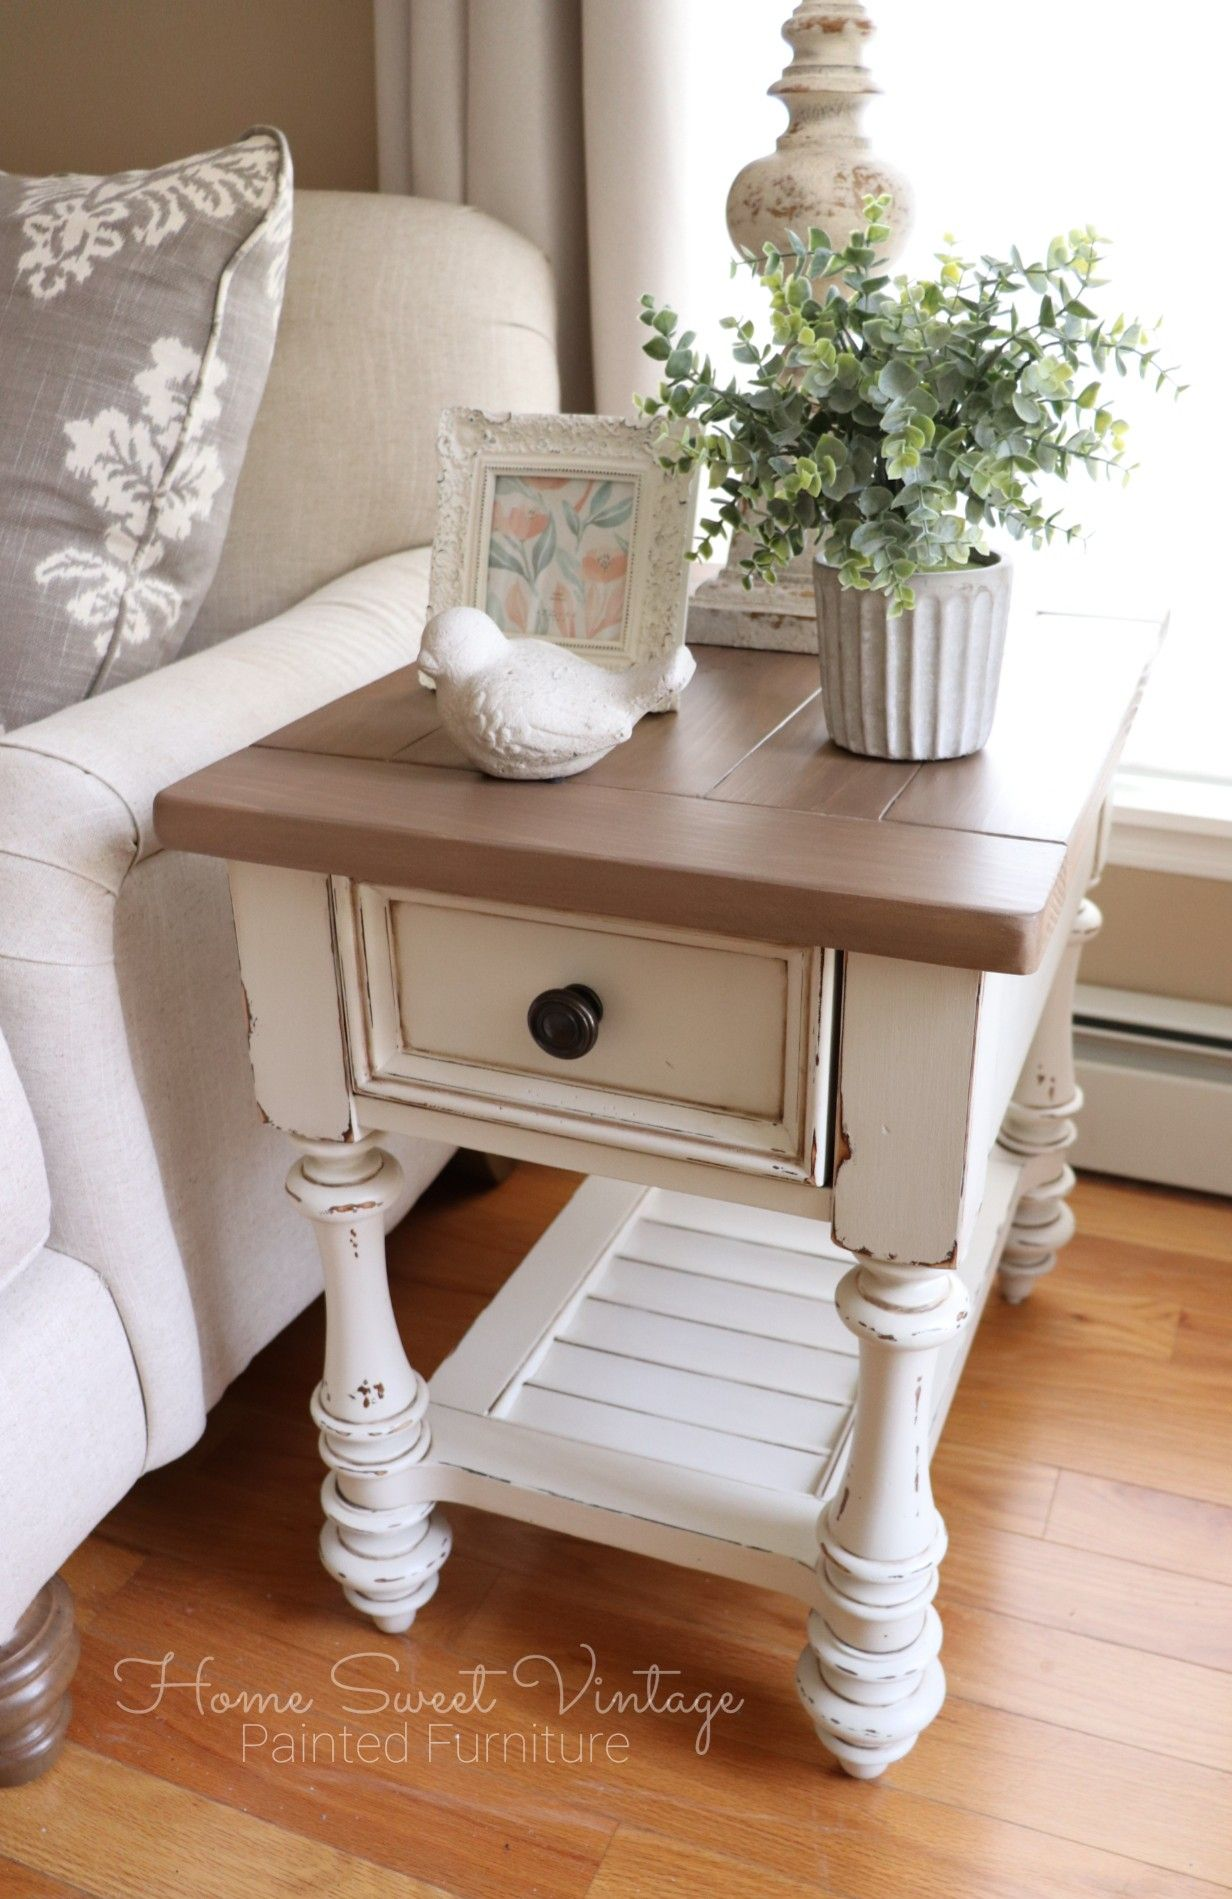 Farmhouse End Table By Home Sweet Vintage Painted Furniture Finished In Dixie Belle Farmhouse End Tables Table Decor Living Room Side Table Decor Living Room